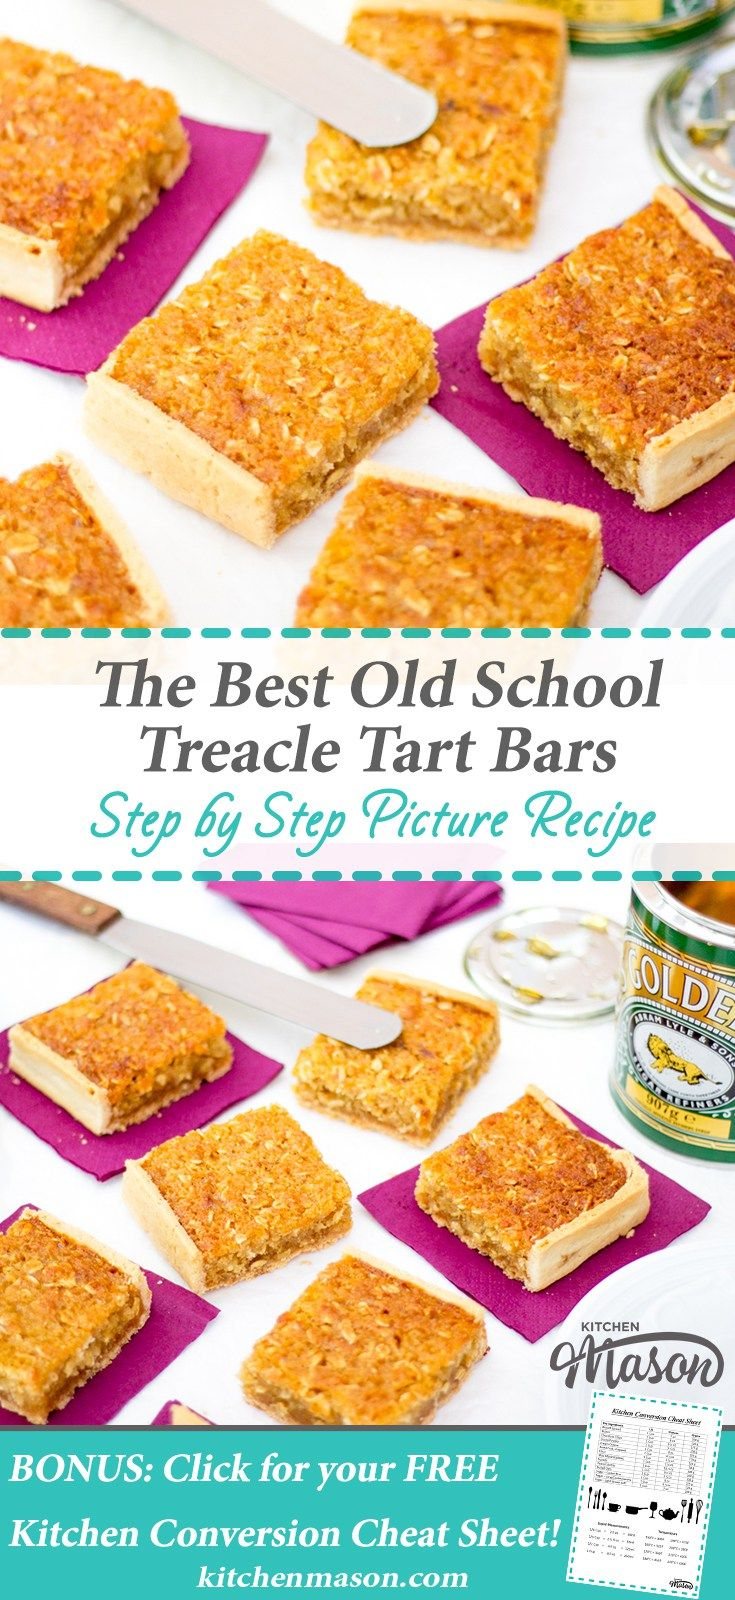 Treacle Tart The Best School Bars Traybake Golden Syrup Treacle Tart Dessert Recipes Easy Dessert Recipes